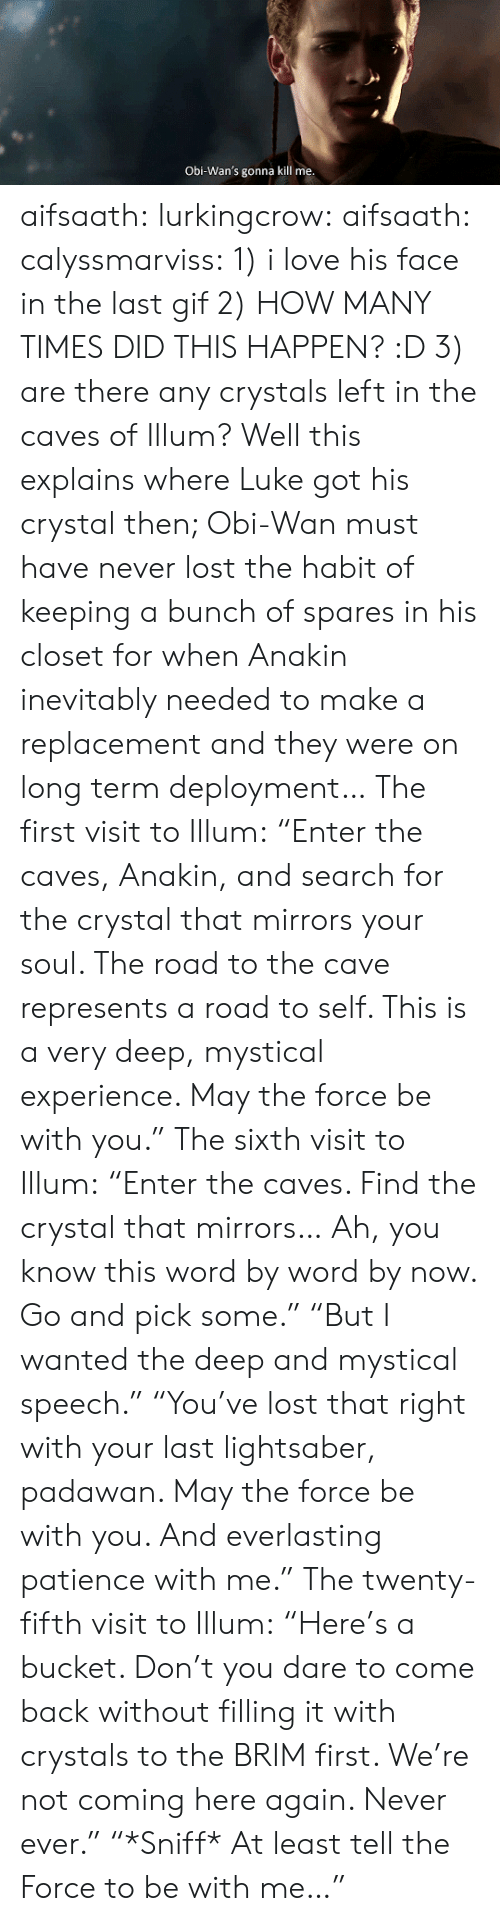 """Sixth: Obi-Wan's gonna kill me aifsaath:  lurkingcrow:  aifsaath:  calyssmarviss: 1) i love his face in the last gif 2) HOW MANY TIMES DID THIS HAPPEN? :D 3) are there any crystals left in the caves of Illum?  Well this explains where Luke got his crystal then; Obi-Wan must have never lost the habit of keeping a bunch of spares in his closet for when Anakin inevitably needed to make a replacement and they were on long term deployment…  The first visit to Illum: """"Enter the caves, Anakin, and search for the crystal that mirrors your soul. The road to the cave represents a road to self. This is a very deep, mystical experience. May the force be with you."""" The sixth visit to Illum: """"Enter the caves. Find the crystal that mirrors… Ah, you know this word by word by now. Go and pick some."""" """"But I wanted the deep and mystical speech."""" """"You've lost that right with your last lightsaber, padawan. May the force be with you. And everlasting patience with me."""" The twenty-fifth visit to Illum: """"Here's a bucket. Don't you dare to come back without filling it with crystals to the BRIM first. We're not coming here again. Never ever."""" """"*Sniff* At least tell the Force to be with me…"""""""